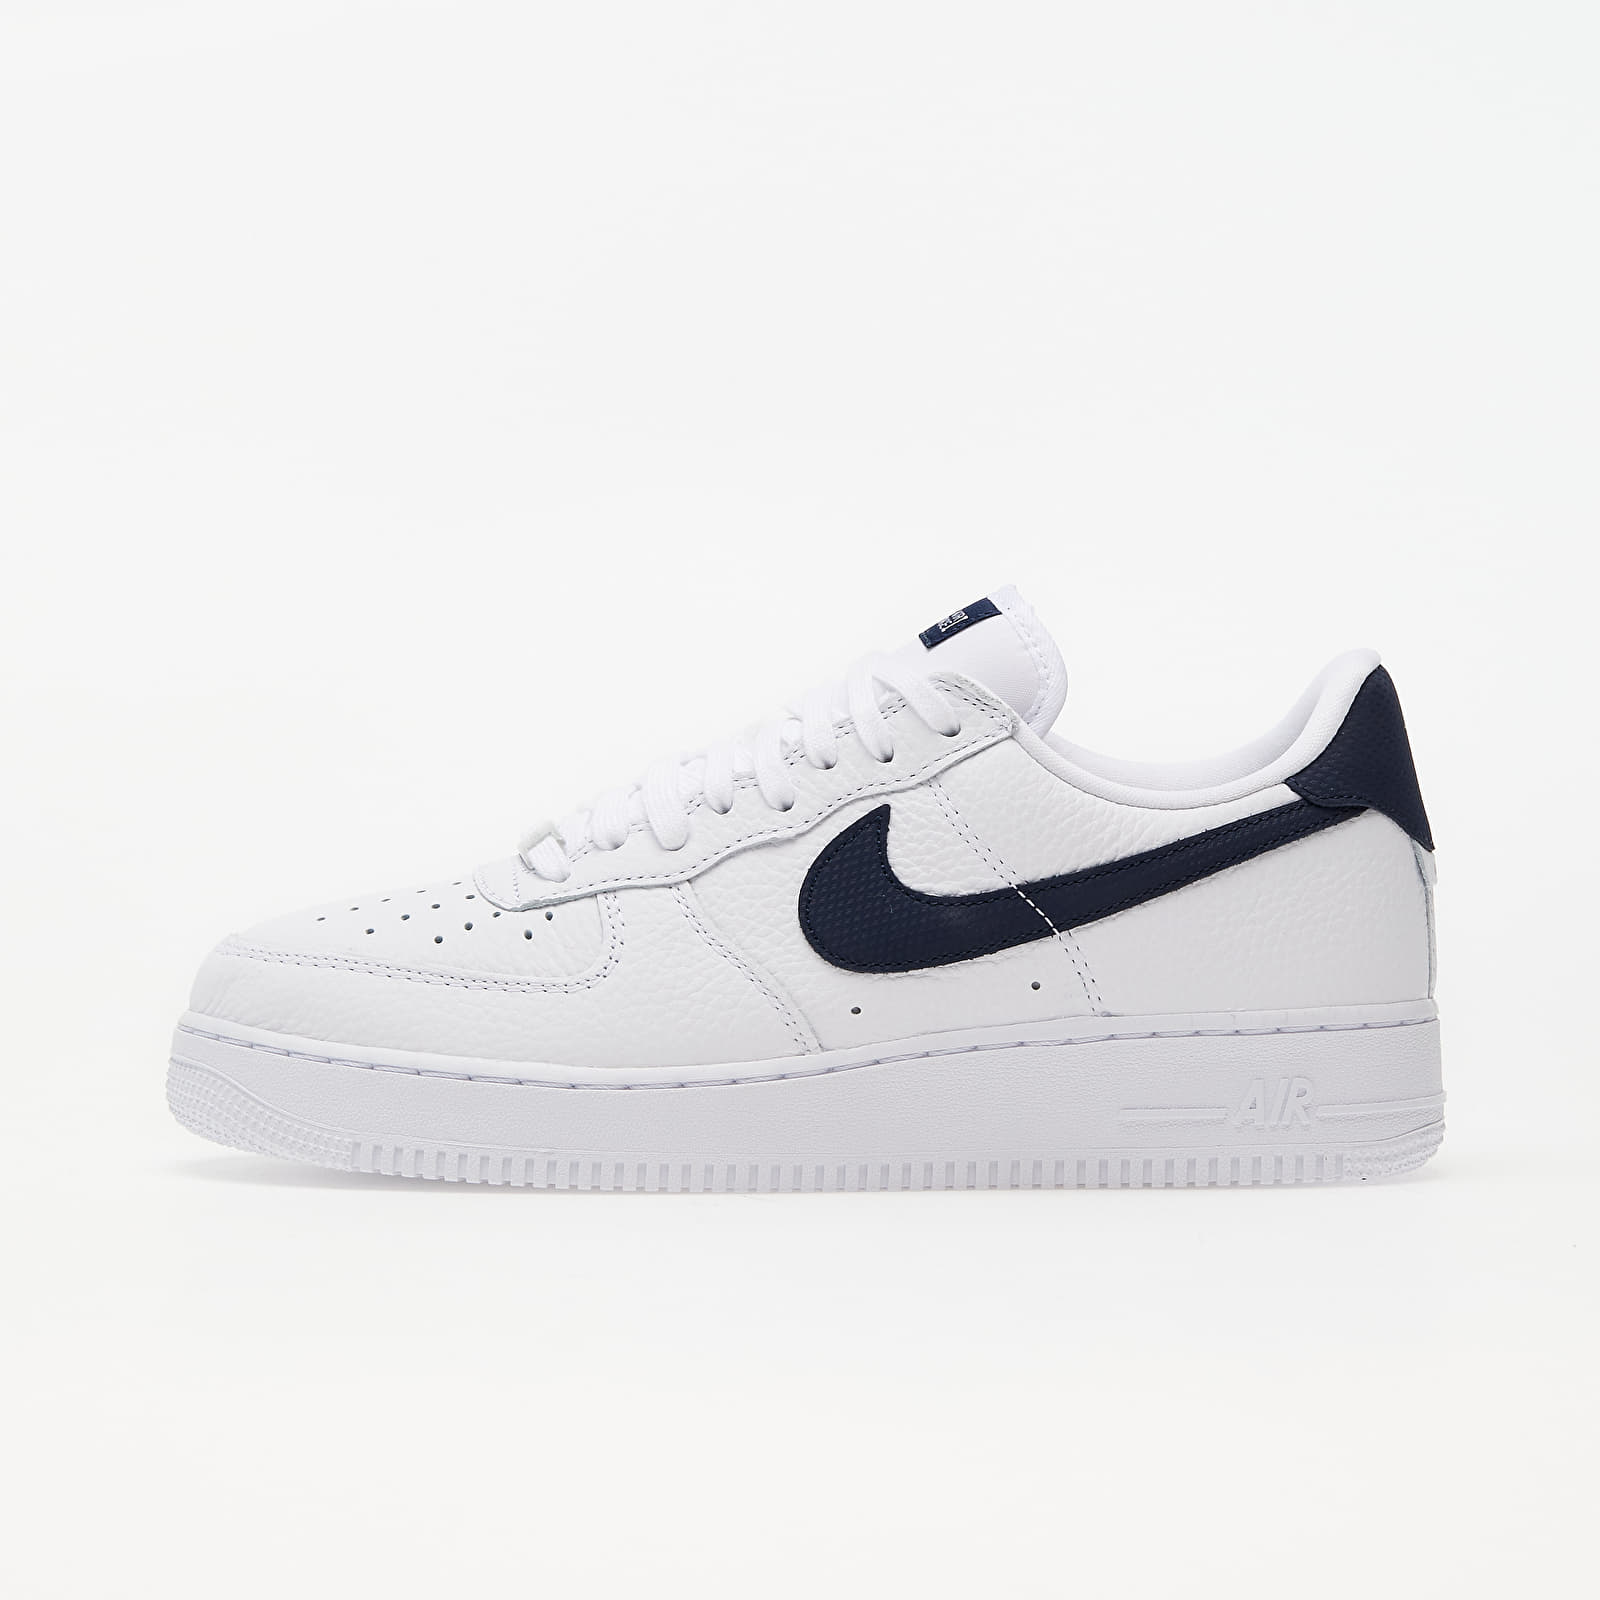 Nike Air Force 1 '07 Craft White/ Obsidian-White CT2317-100